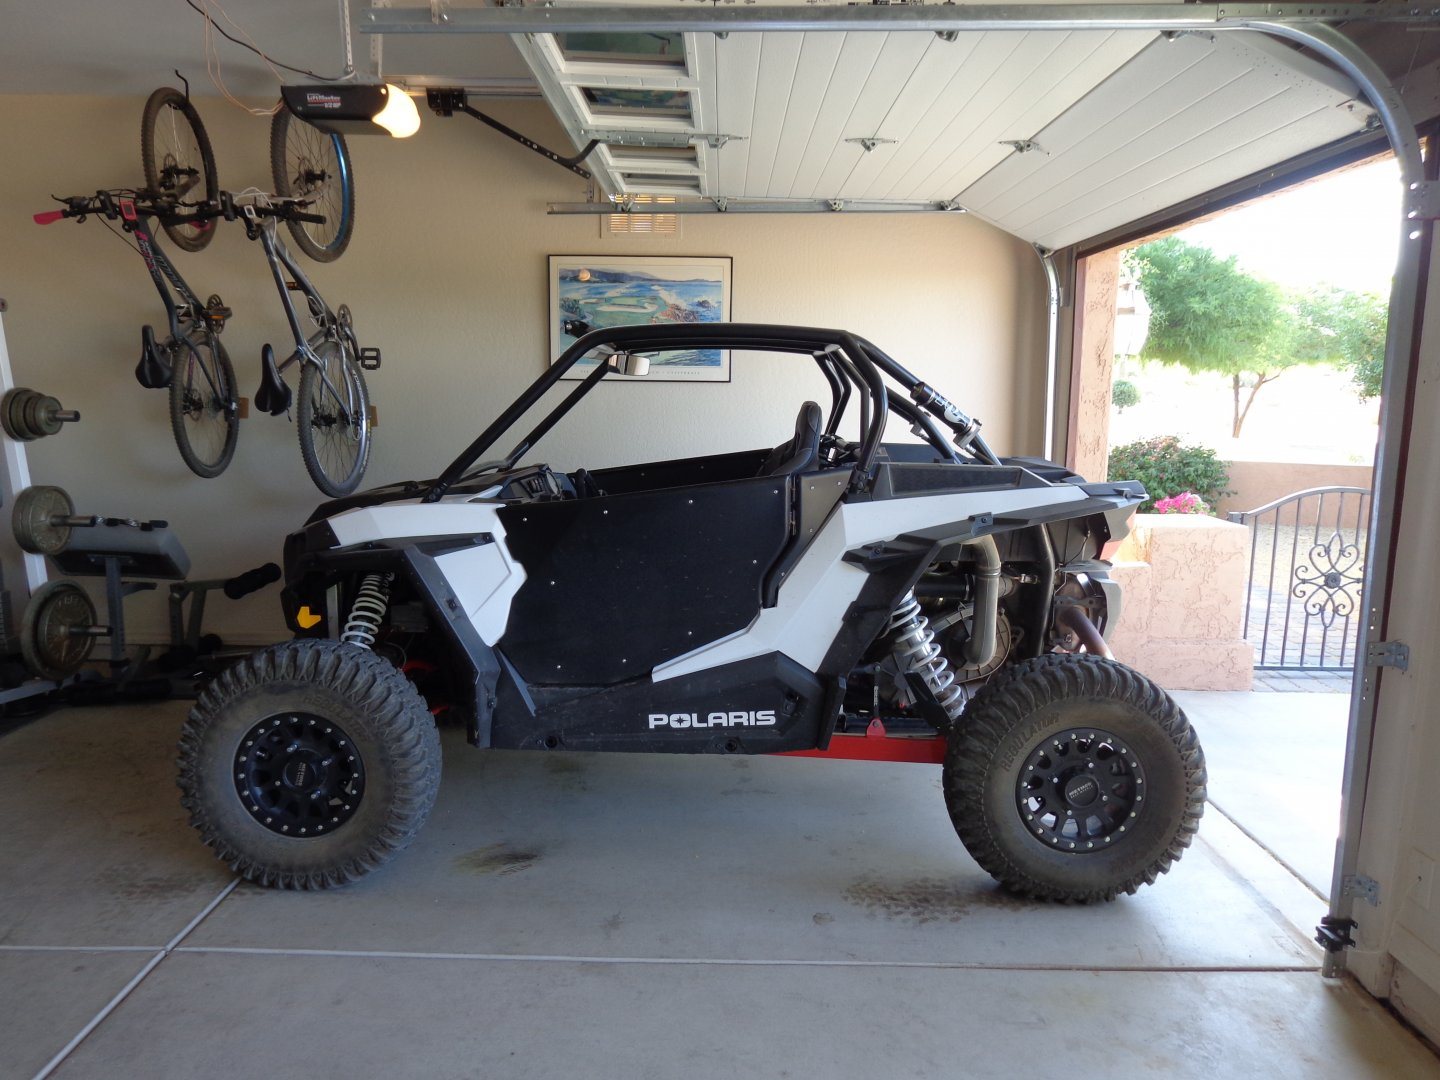 2014 RZR 1000 42 hours and 458 miles | River Daves Place